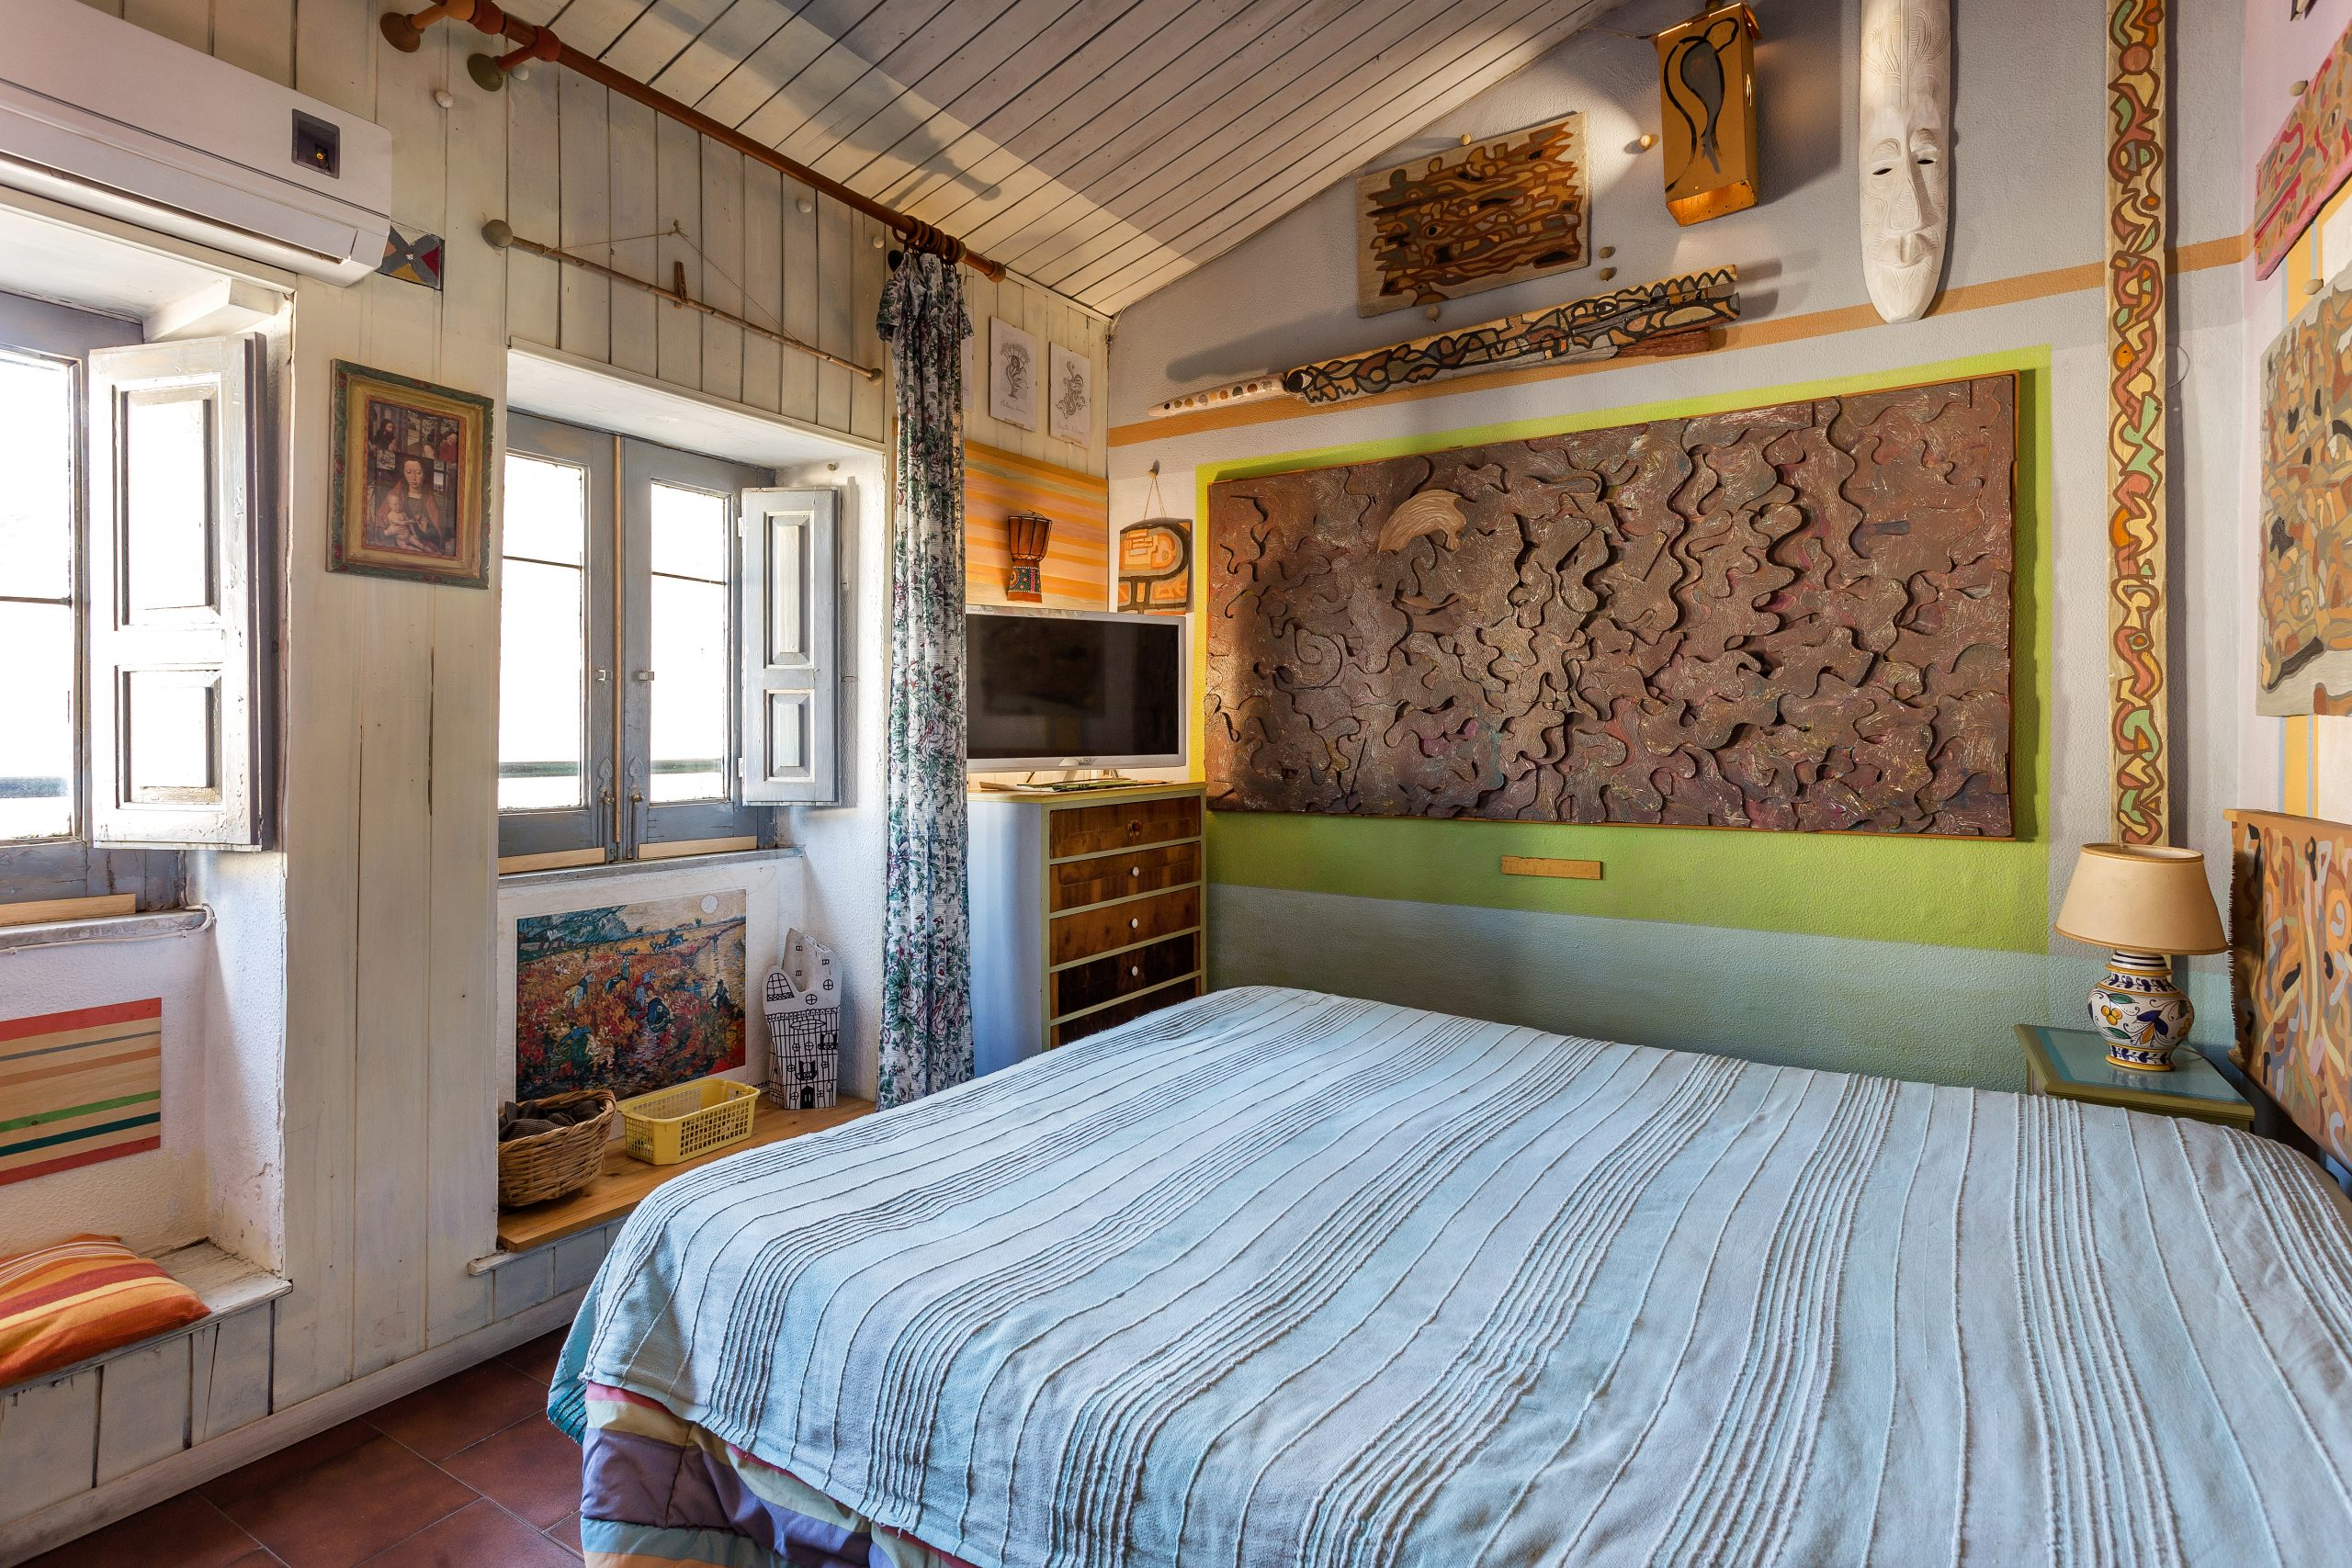 humildad y voluntad